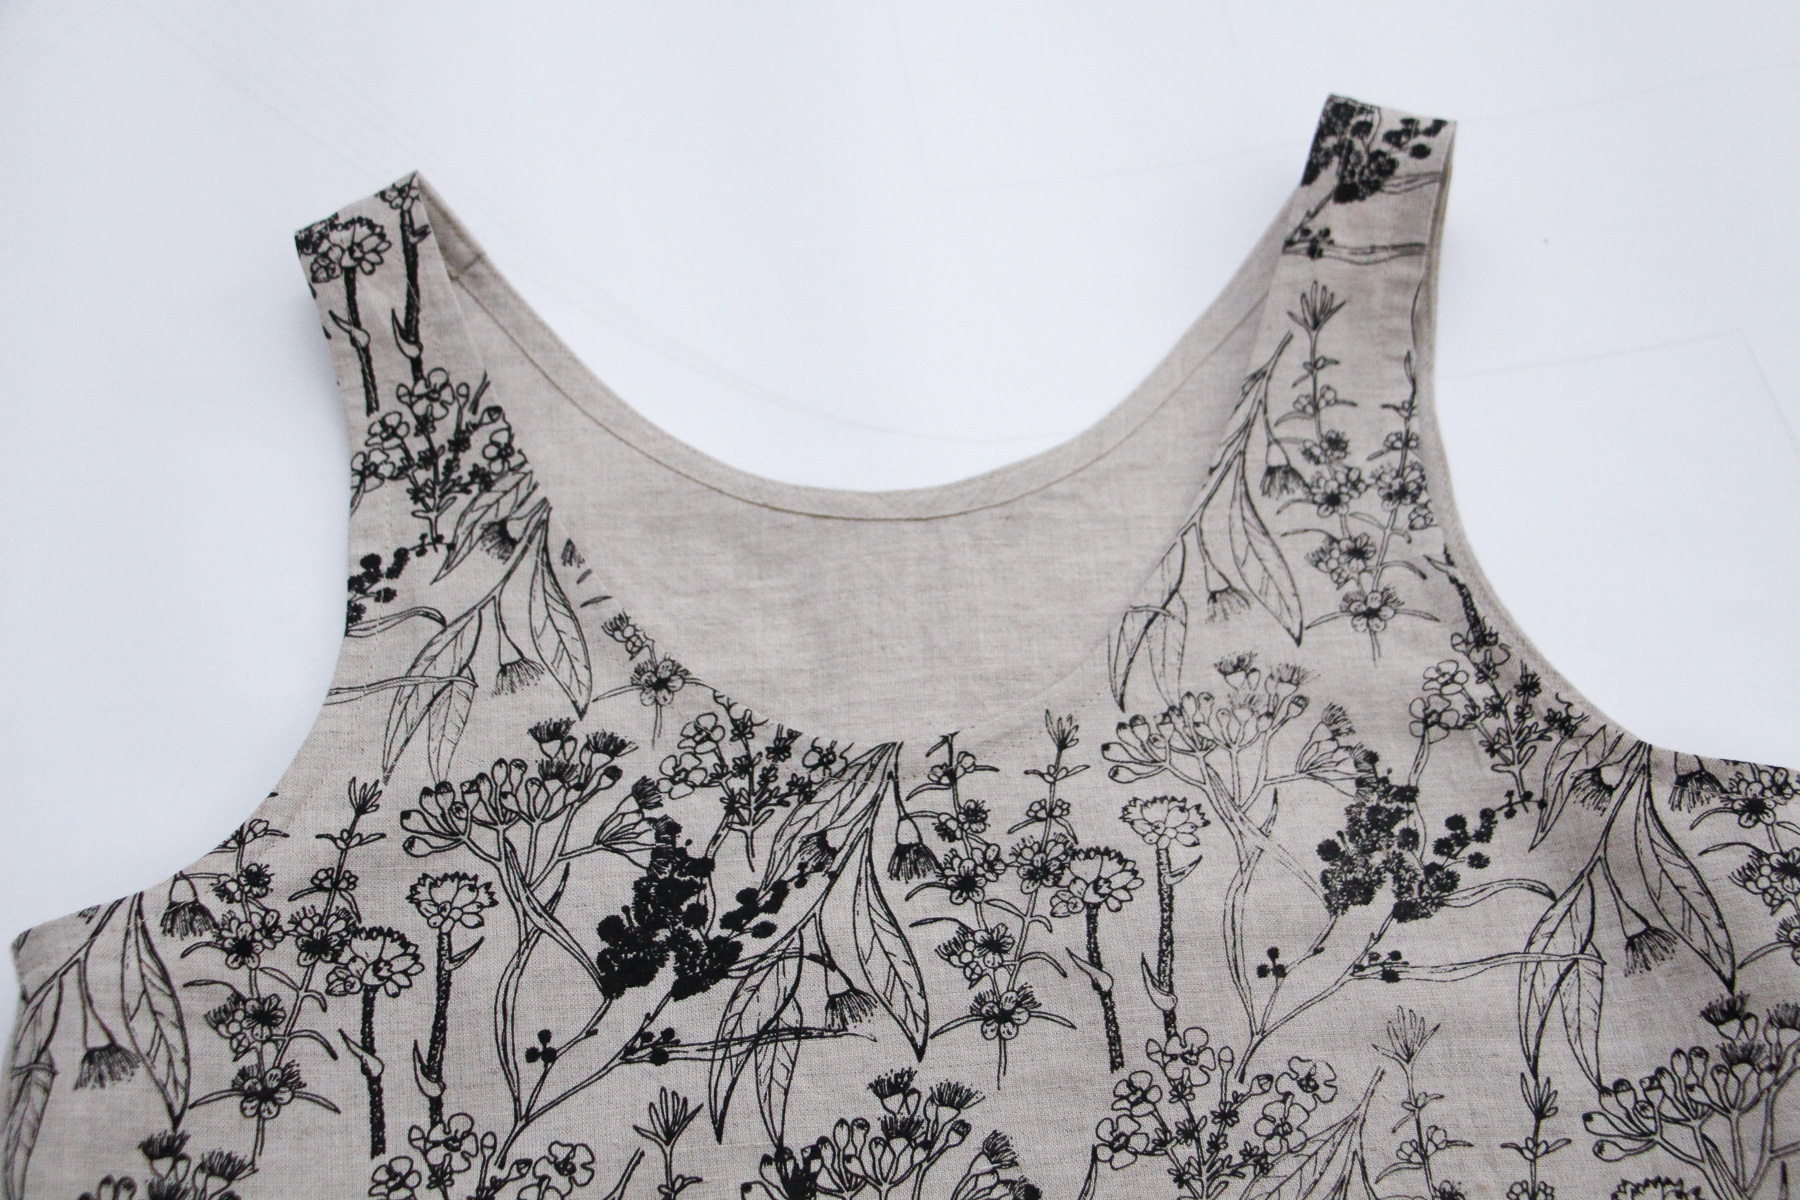 Eucalypt tank top made from linen designed and hand screen printed by Megan Nielsen